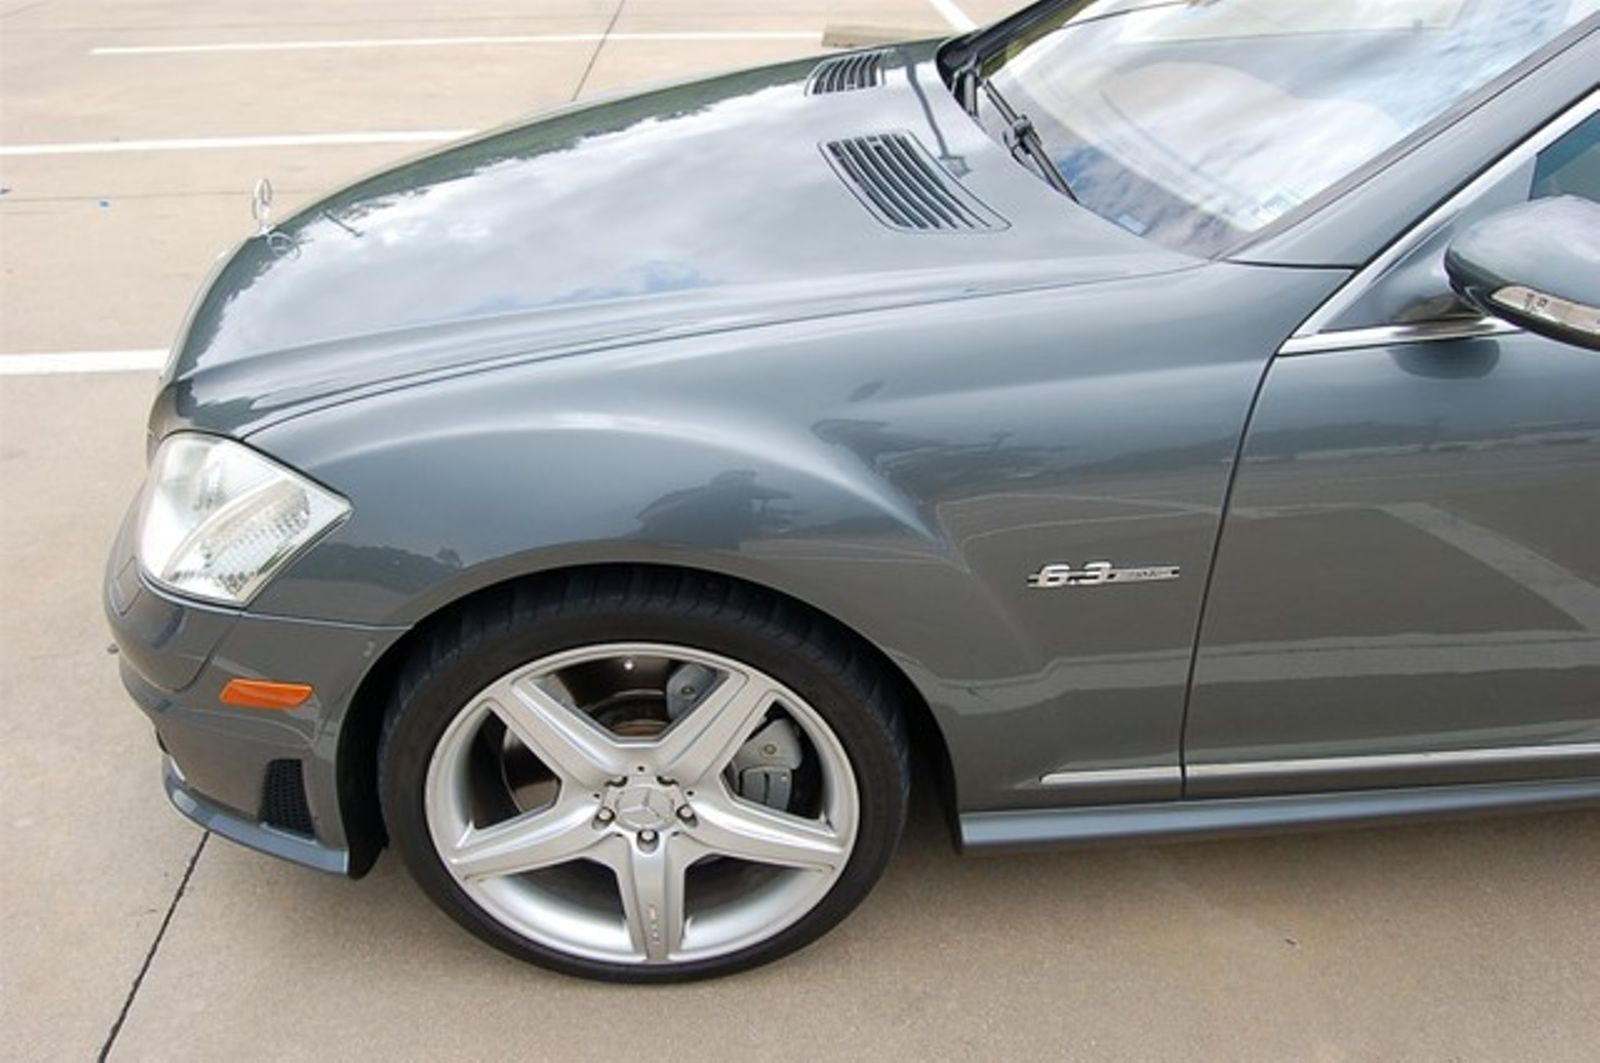 2009 mercedes benz s63 amg only 54k mls garland texas 75088 for Mercedes benz credit score requirements